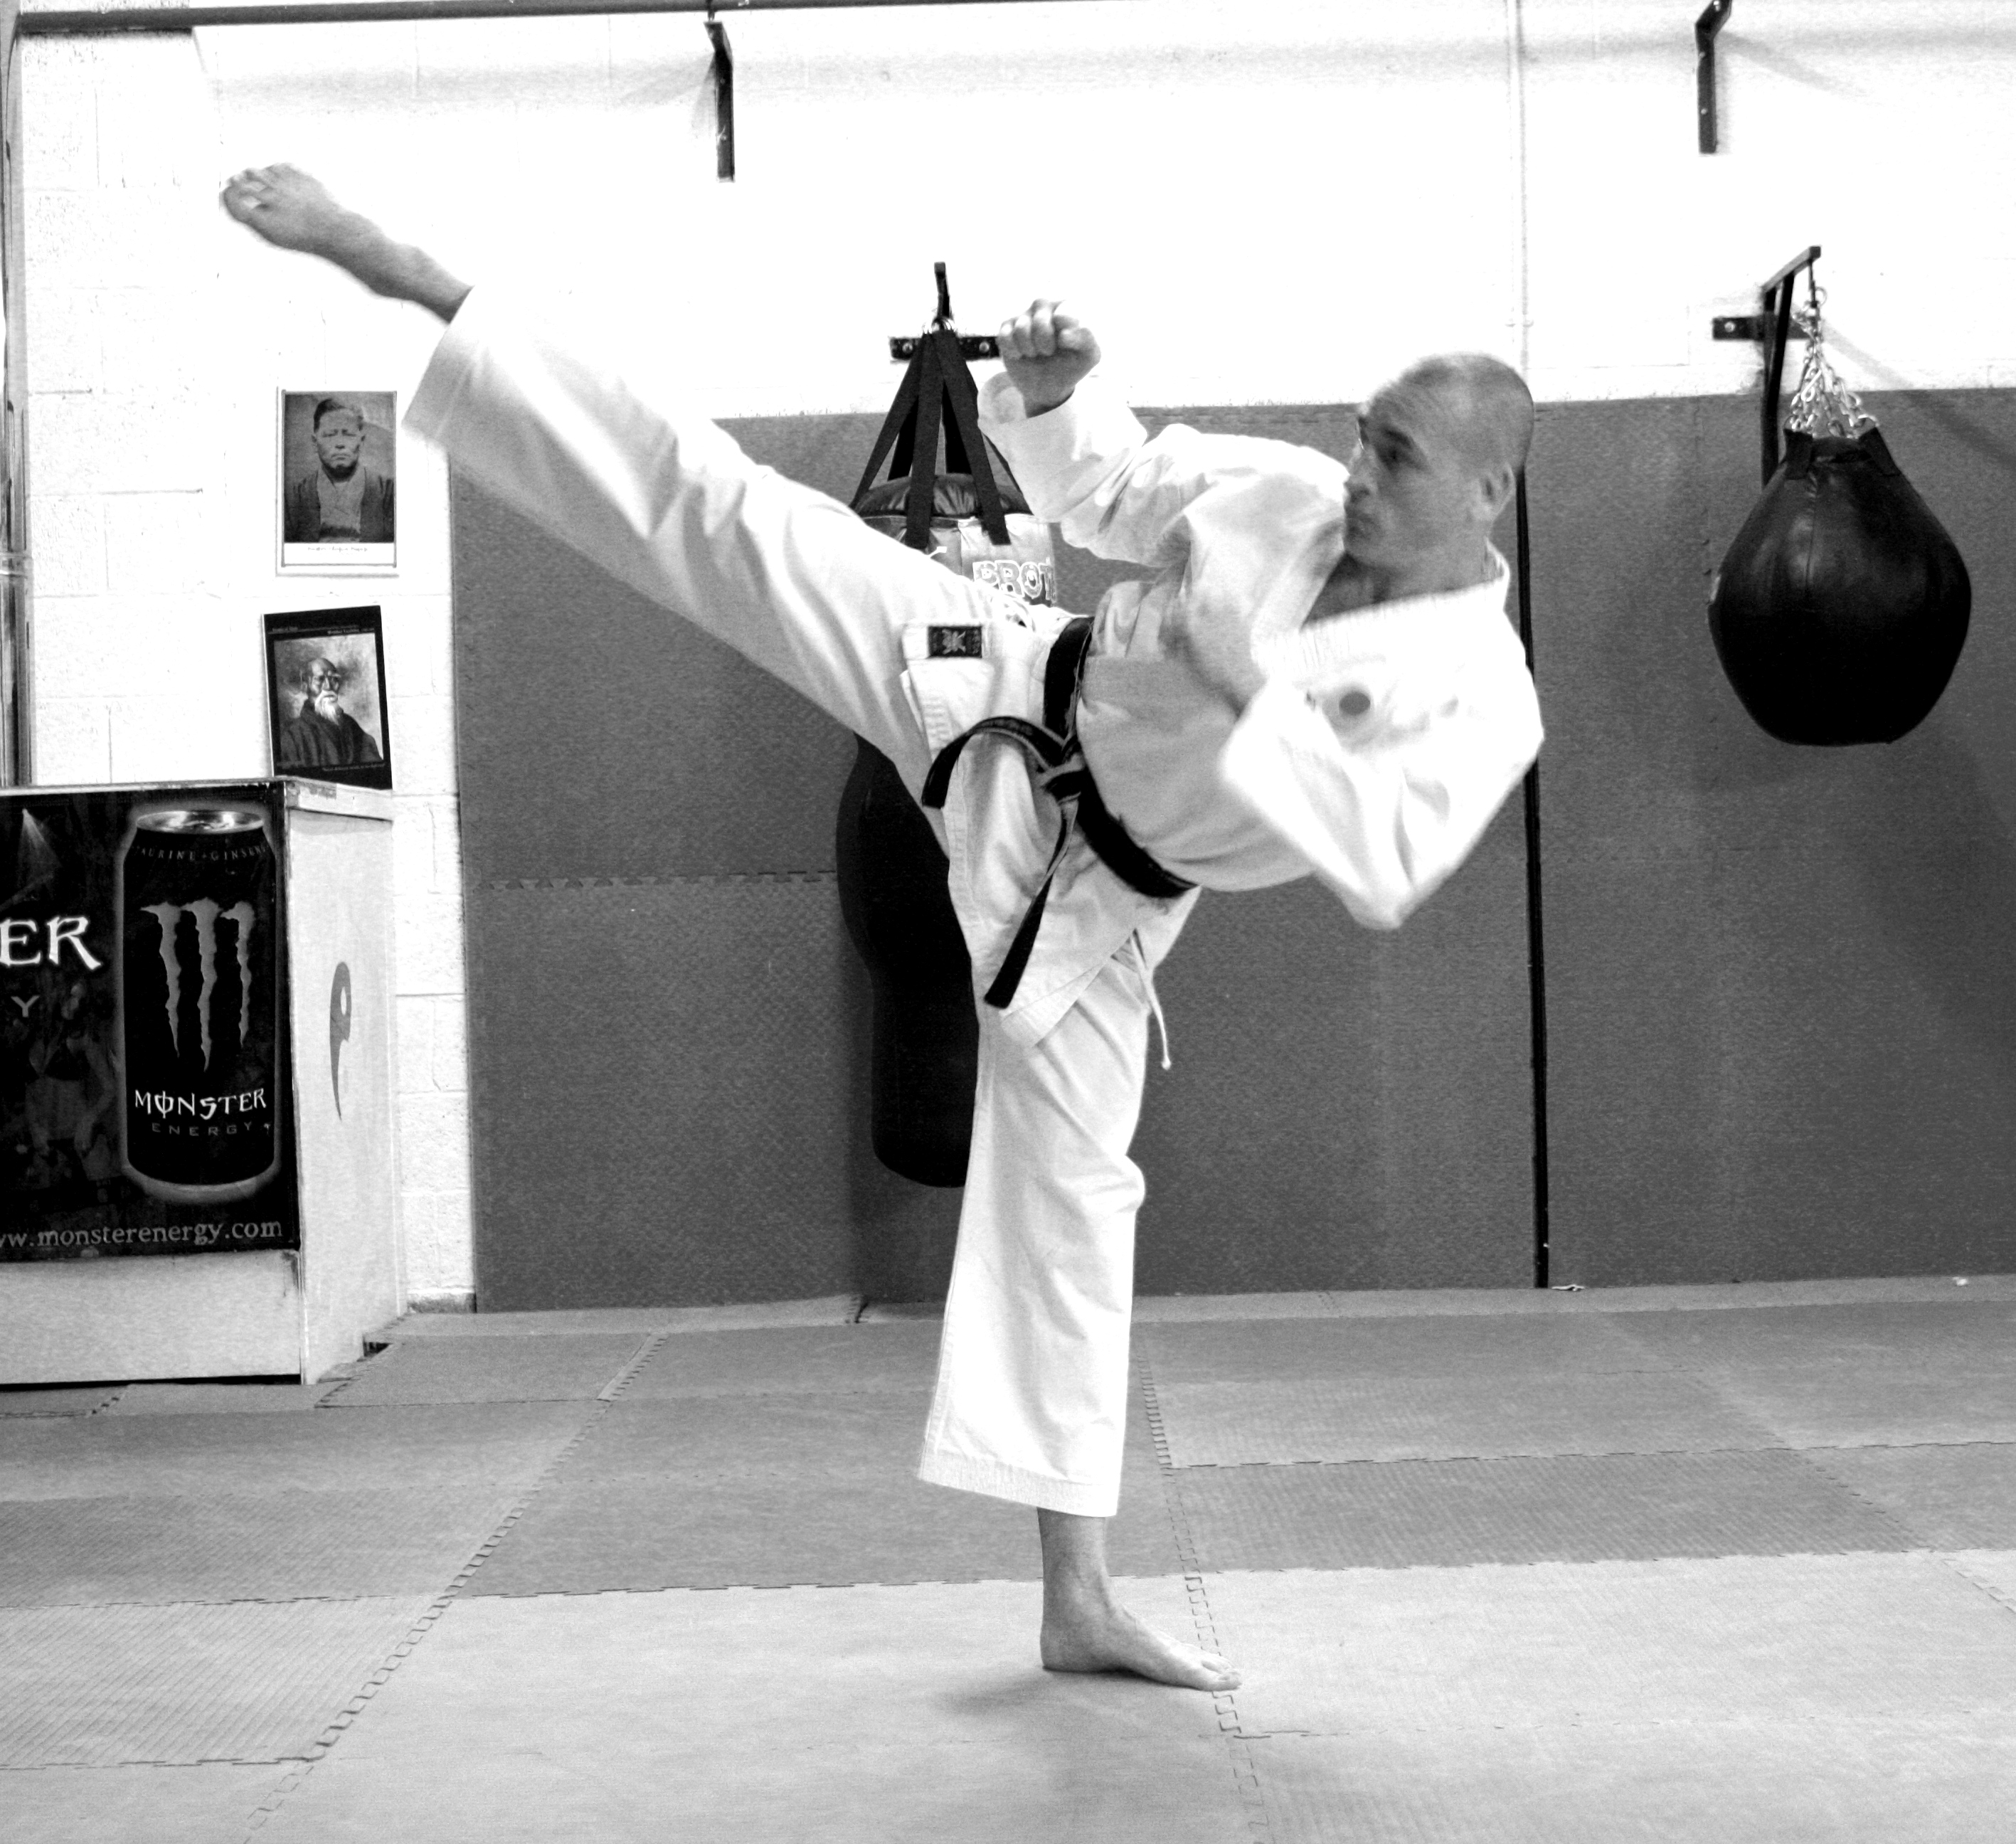 Wandtattoo Judo About Al Peasland Completeselfprotection